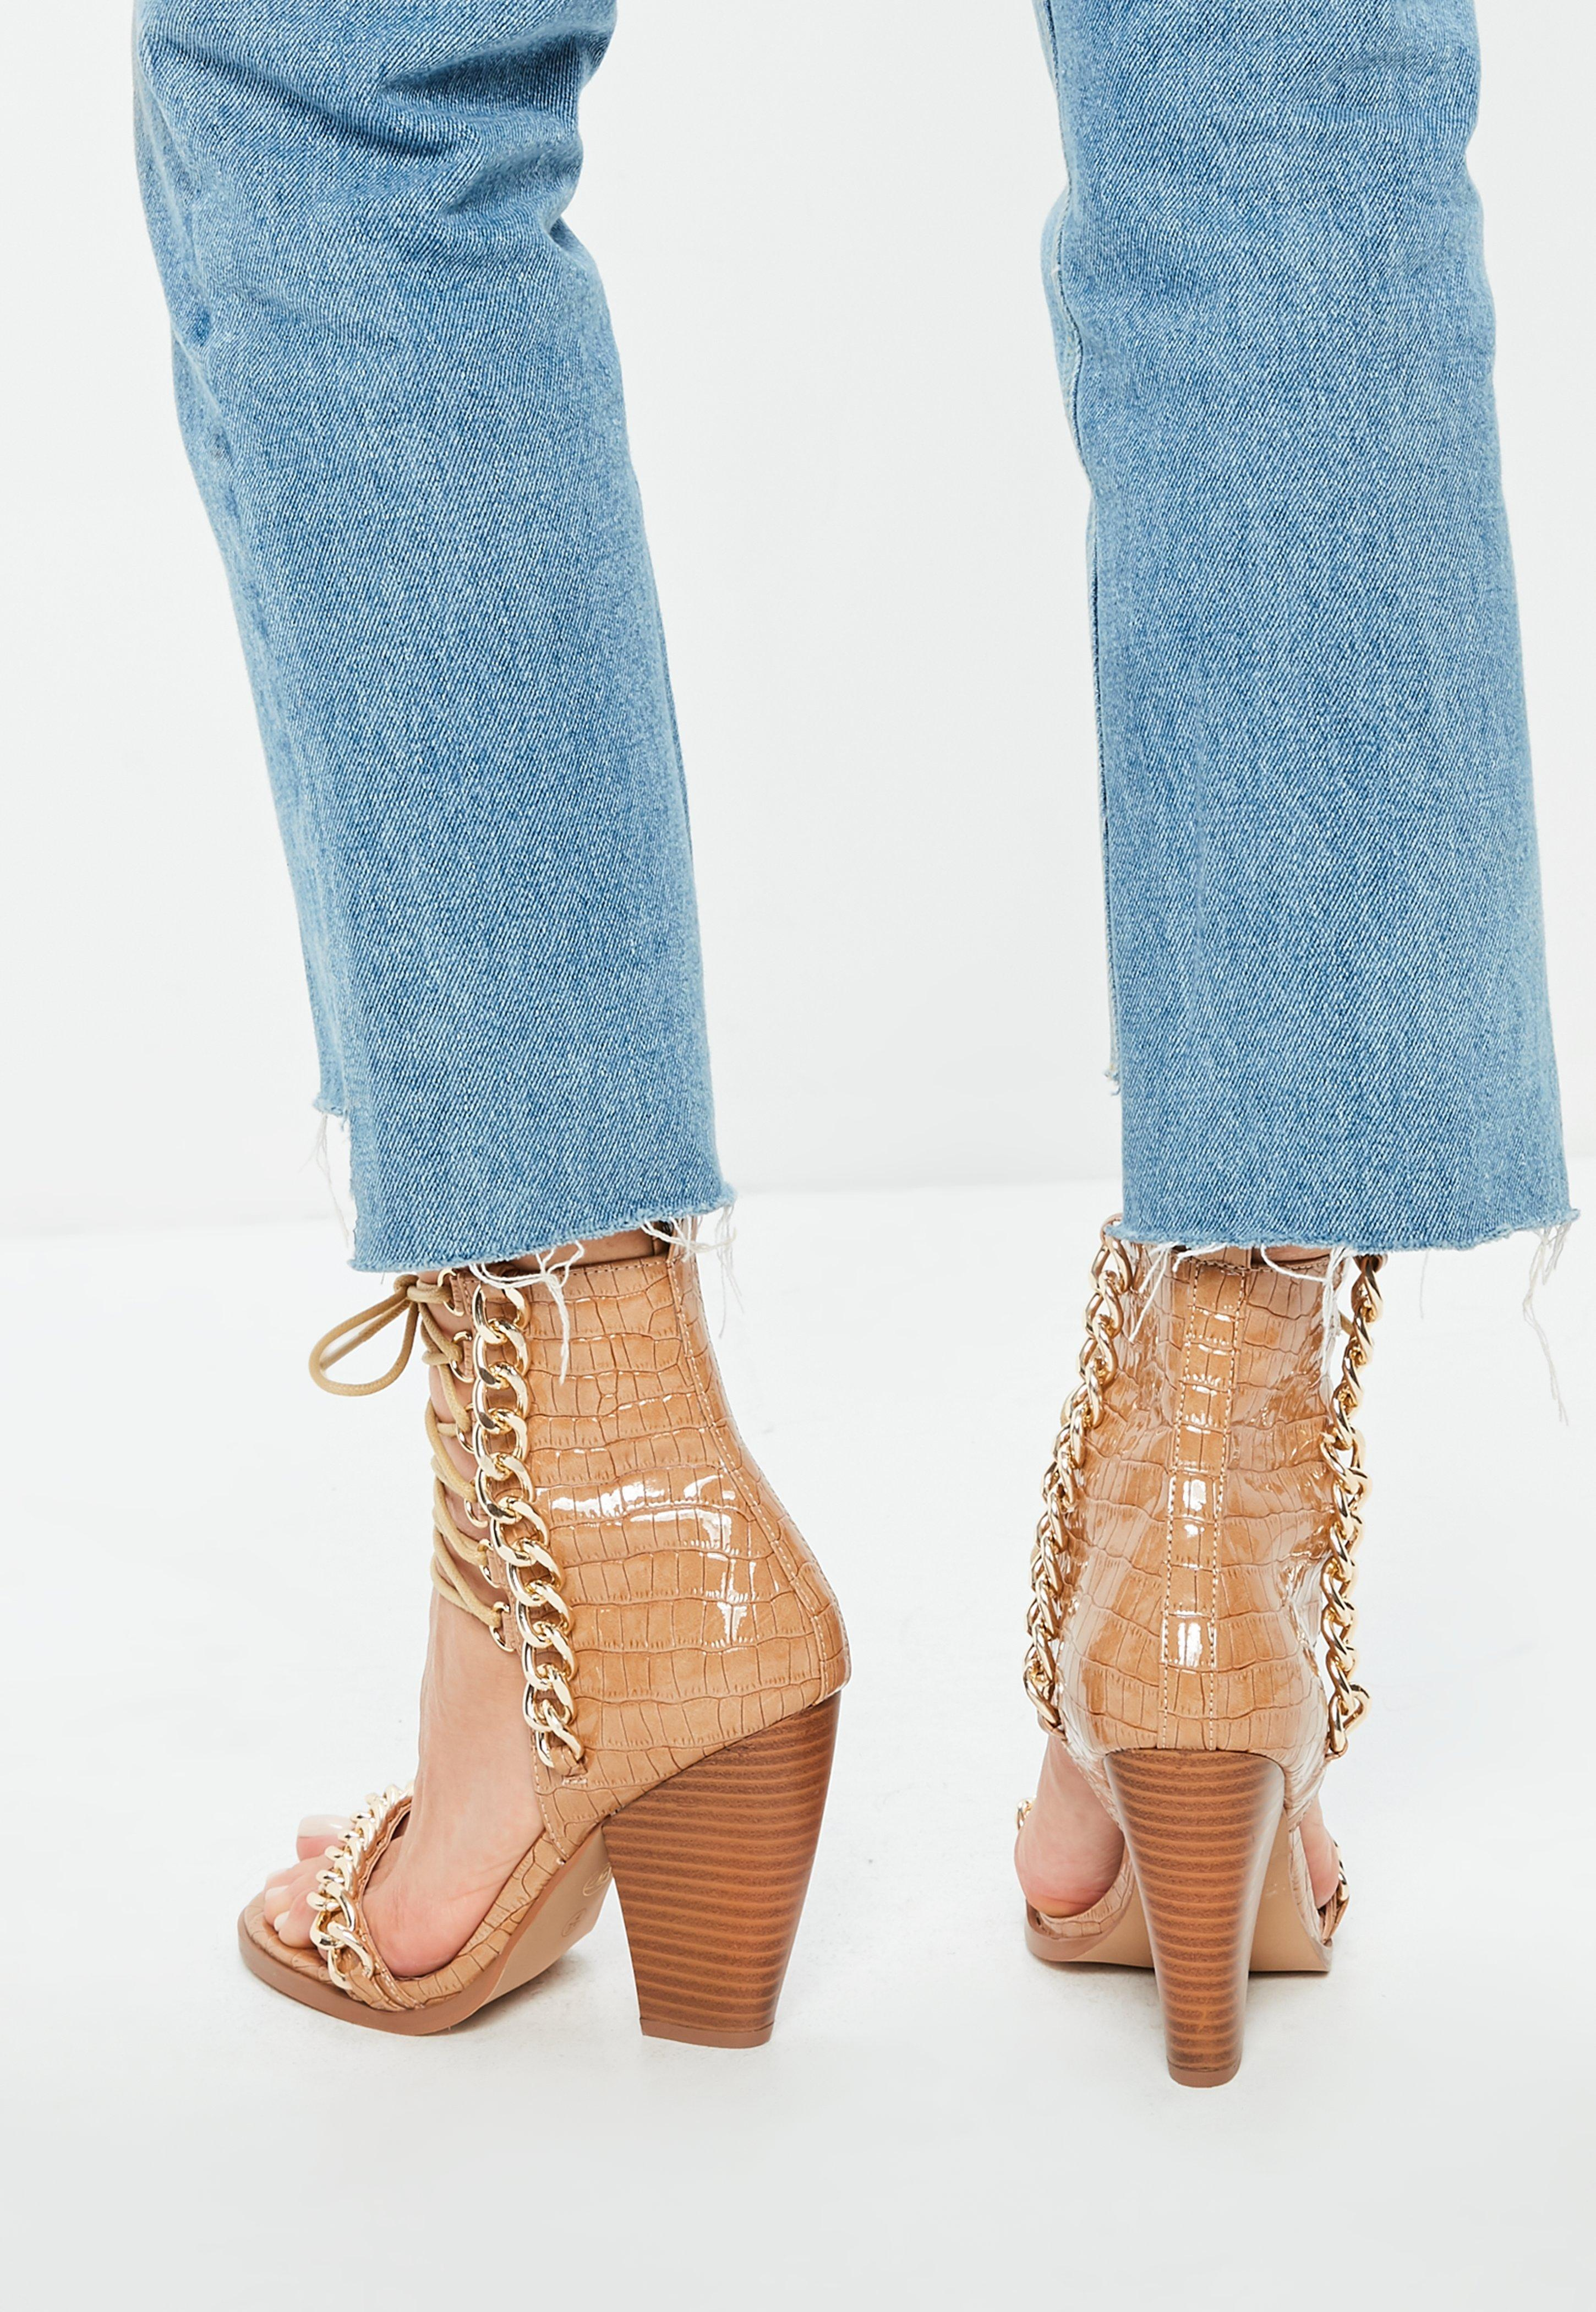 63cc52df71ba Missguided - Multicolor Nude Croc Chain Lace Up Heeled Sandals - Lyst. View  fullscreen